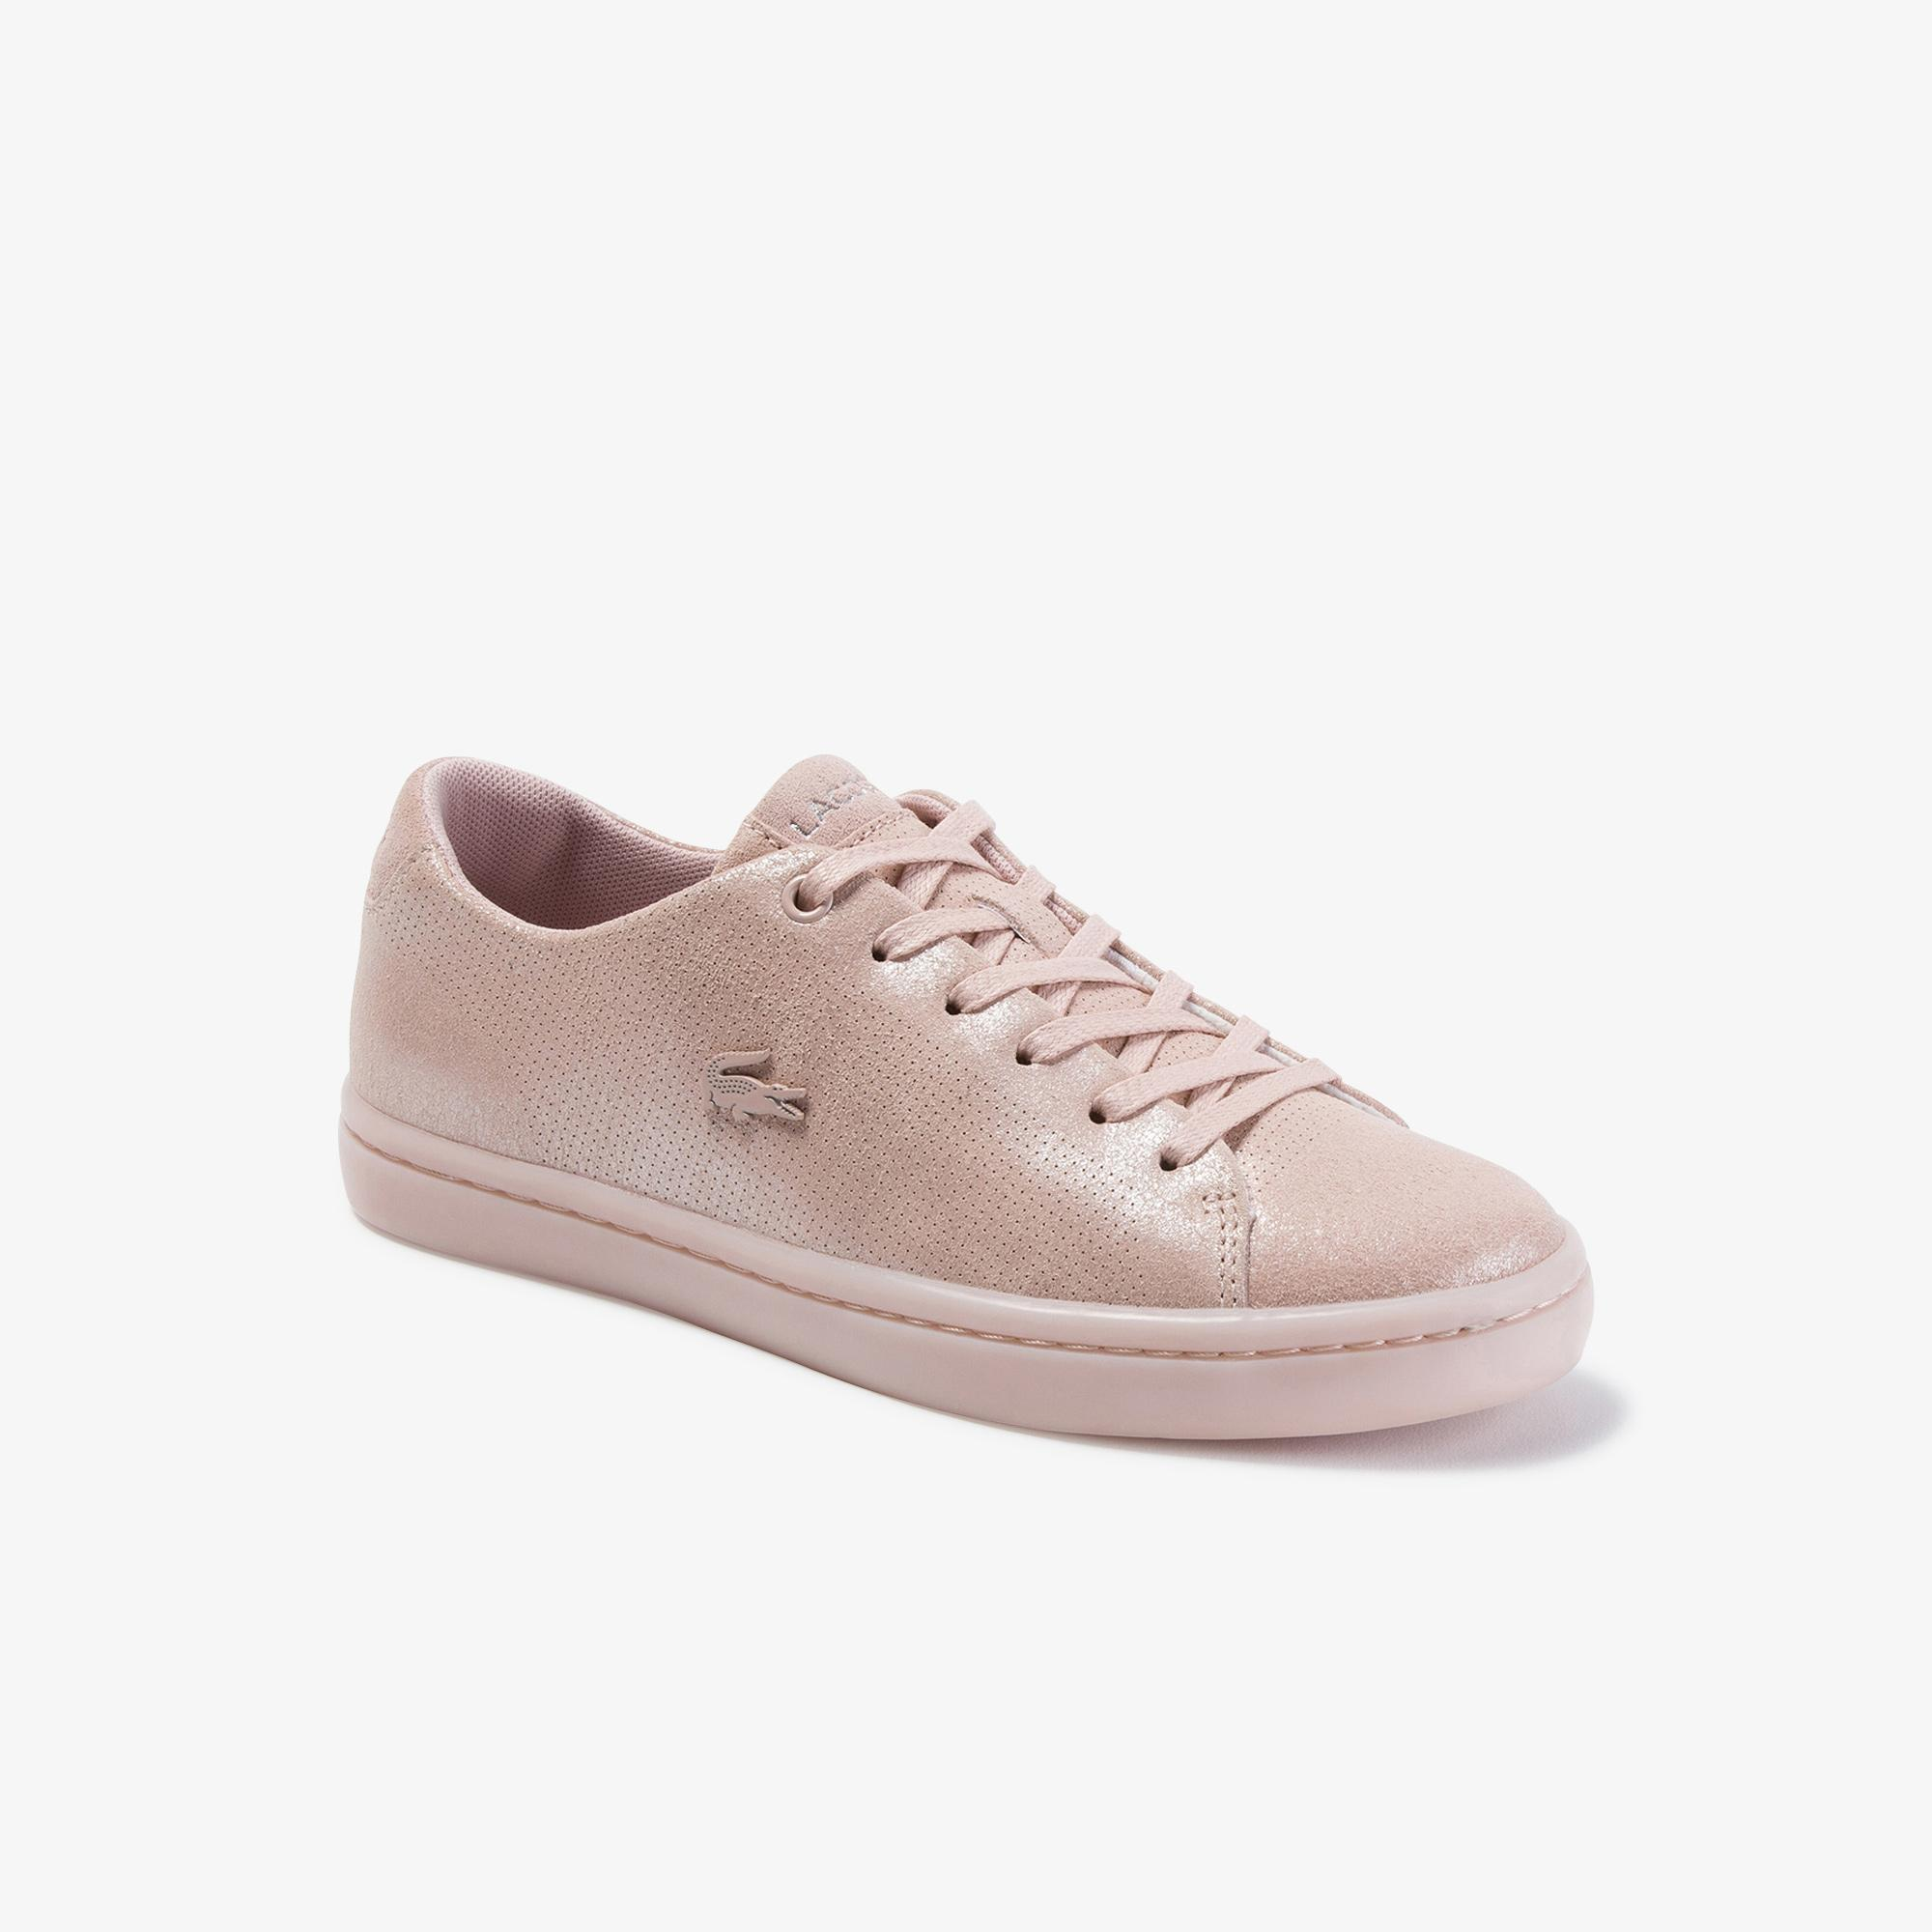 Lacoste Showcourt 2.0 120 1 Women's Sneakers